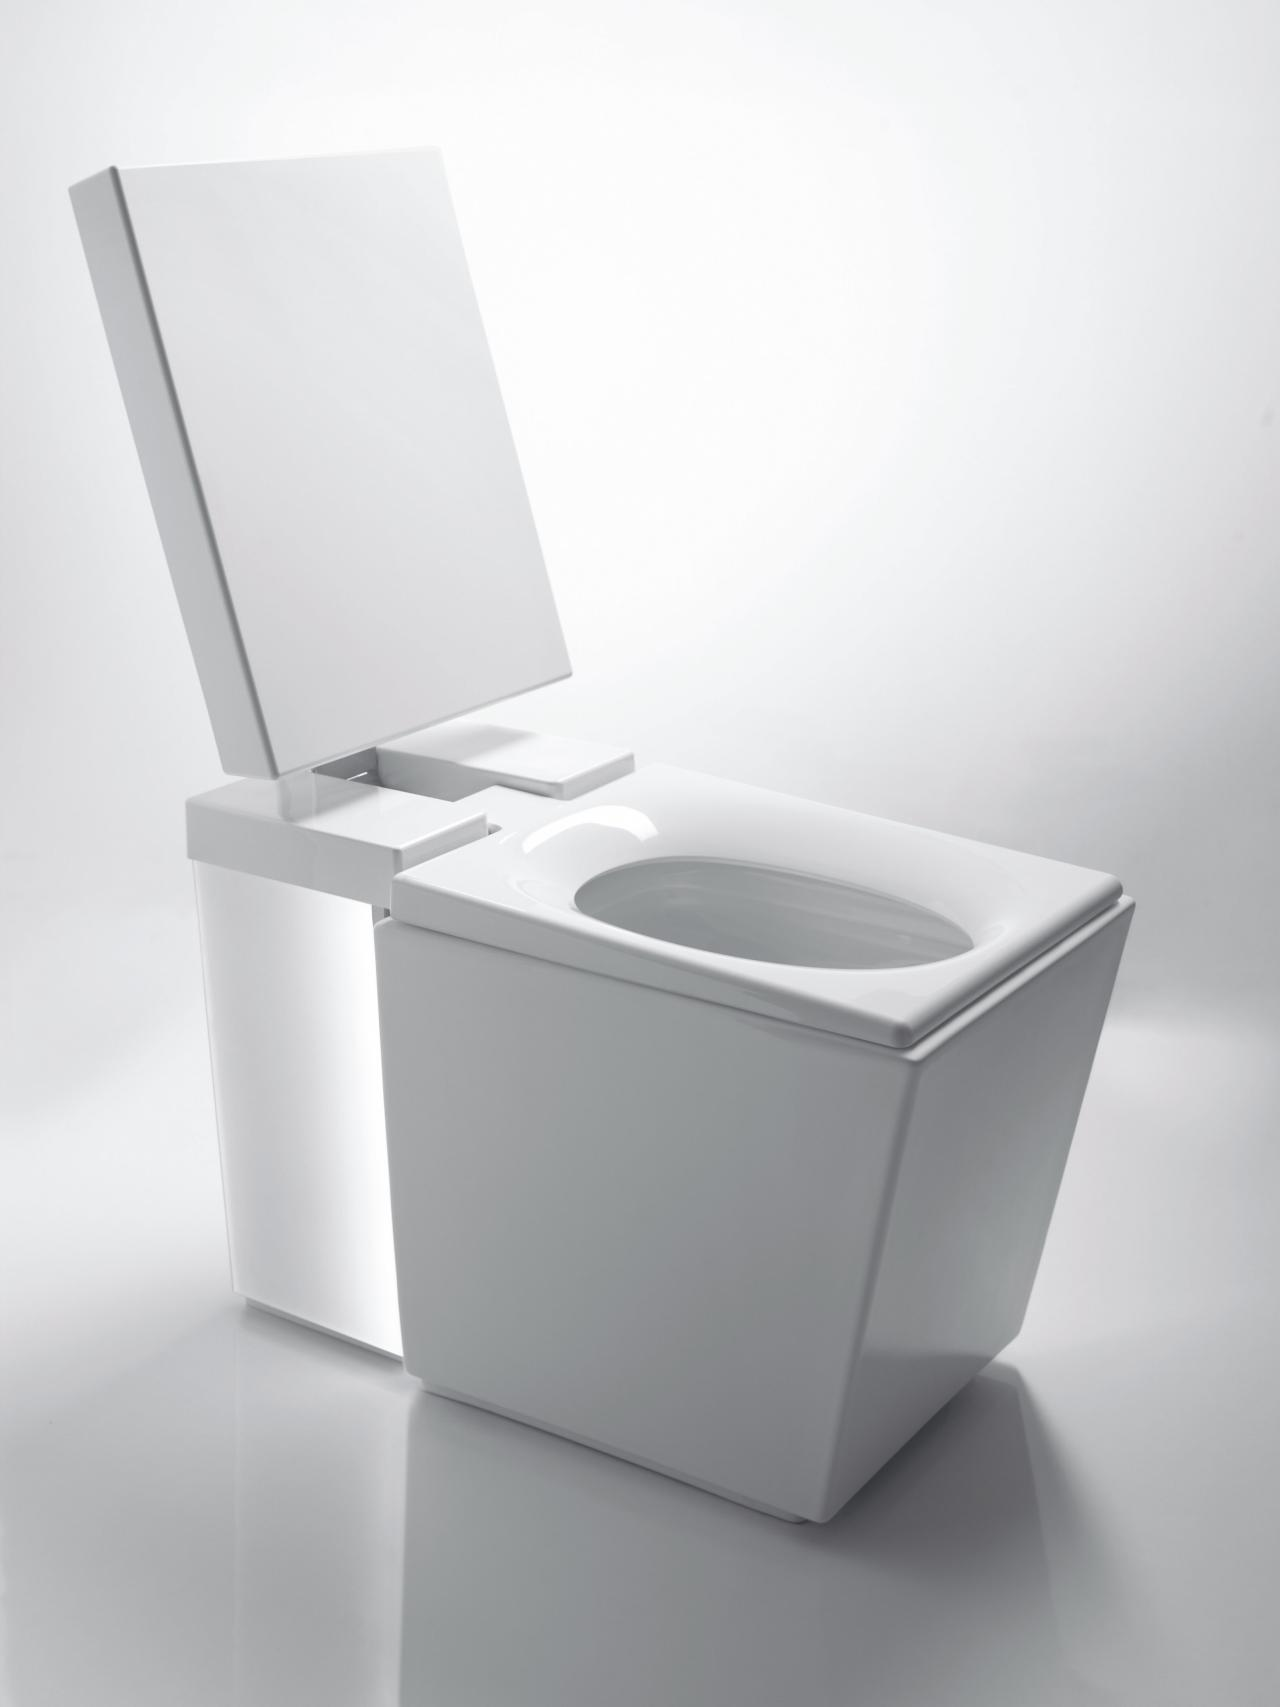 Luxury toilets with no water - Civil/Automobile sector, Interesting ...